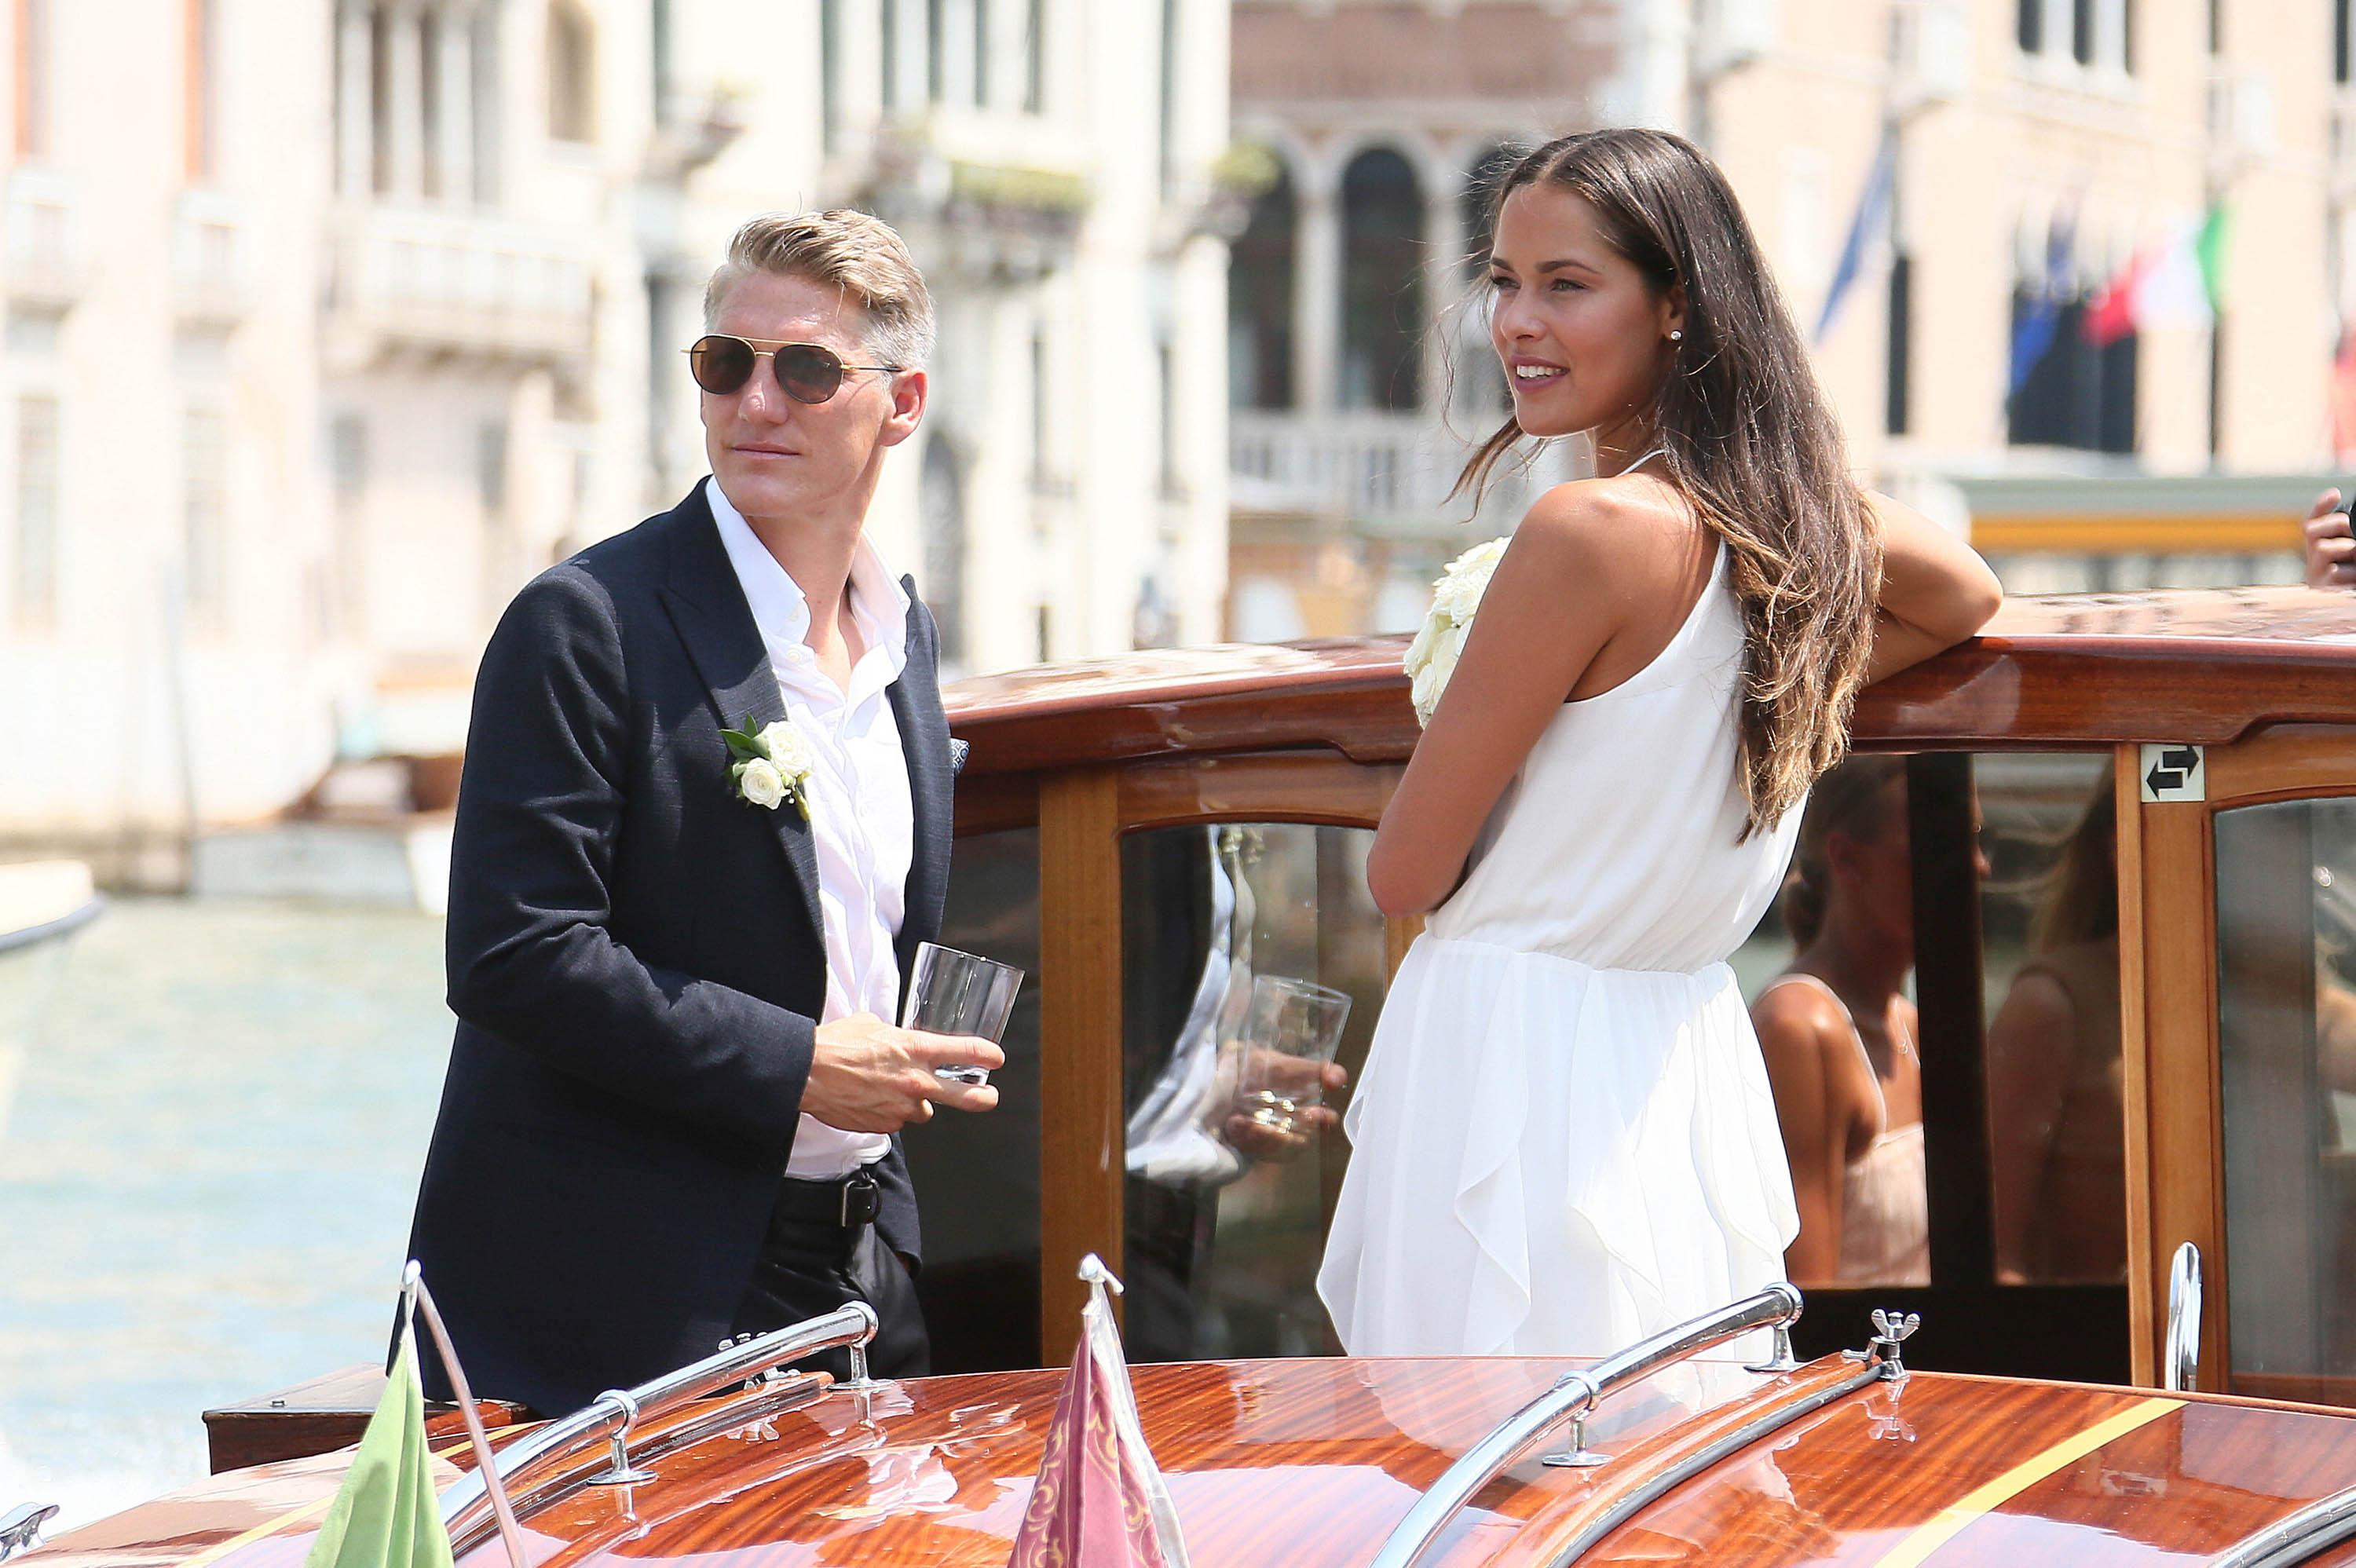 Schweinsteiger and Ivanovic got married in Venice in a stunning ceremony in 2016